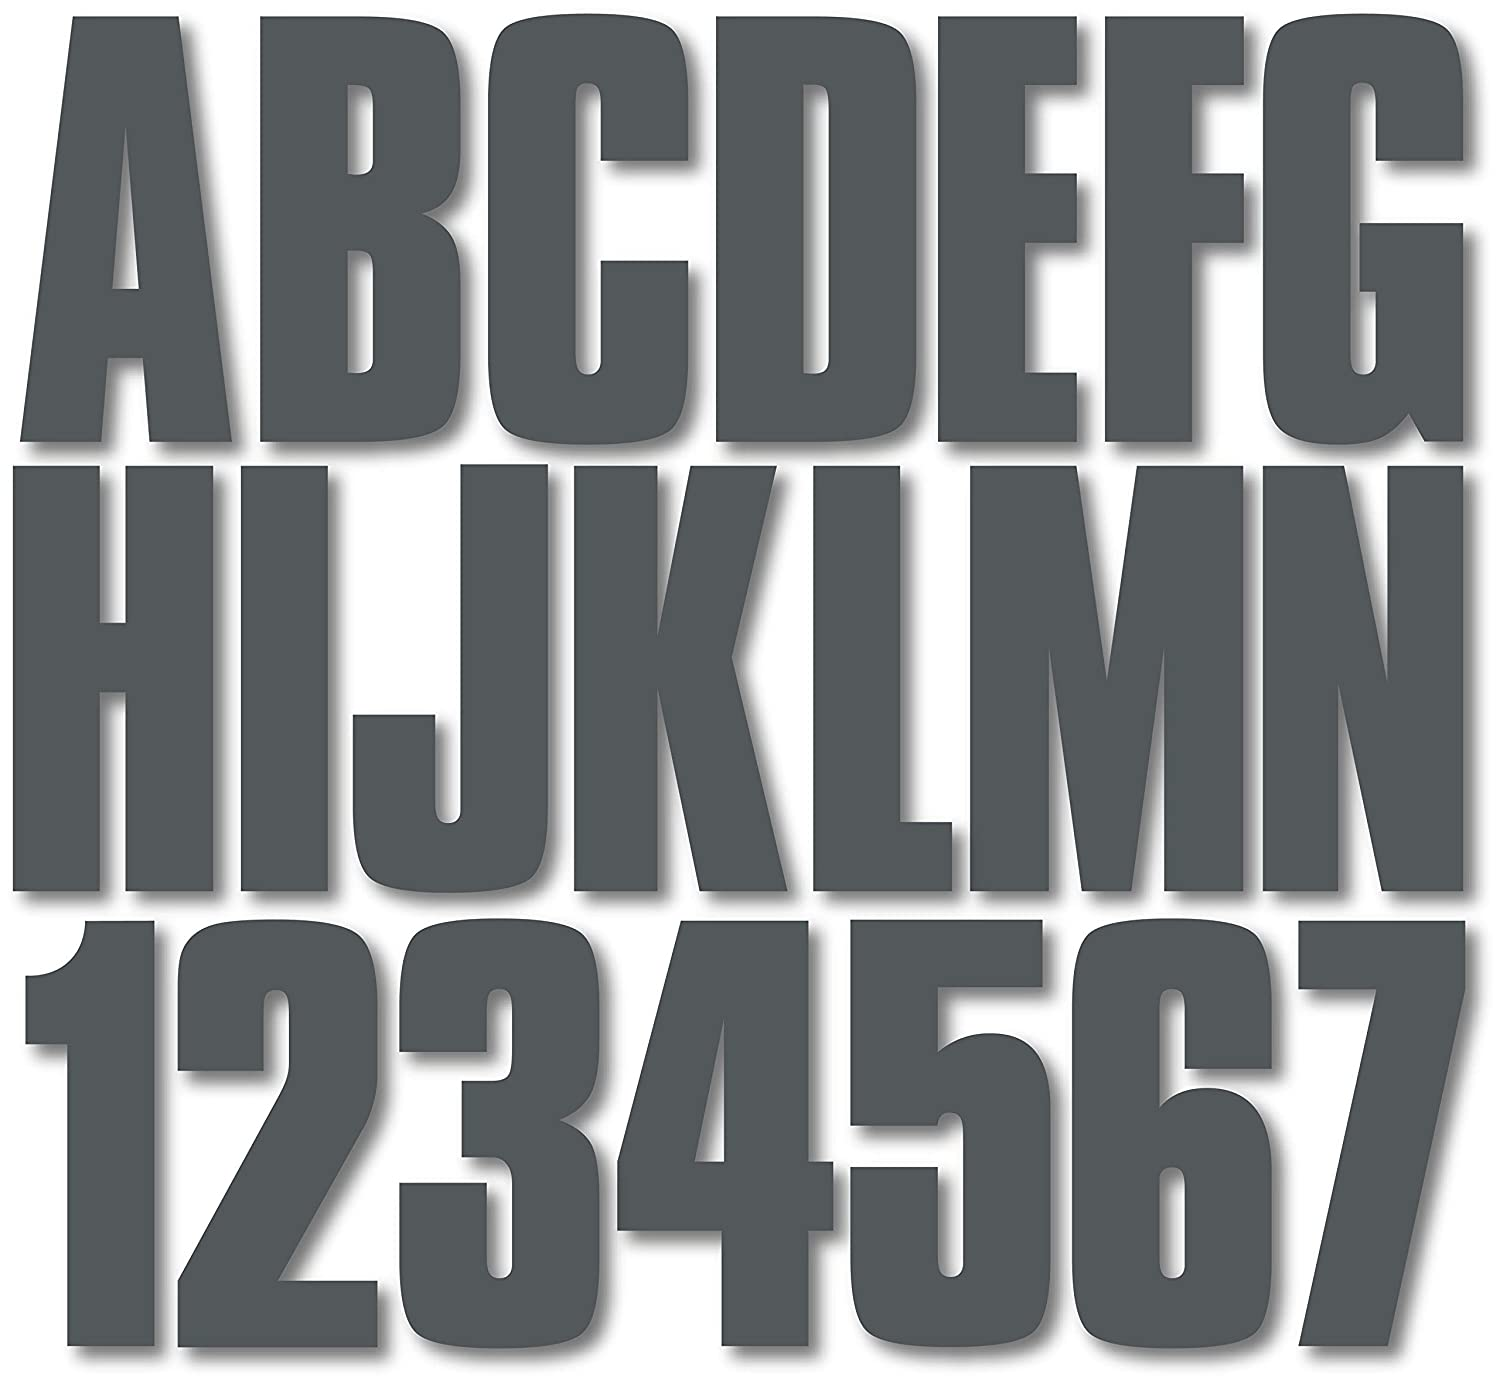 Stiffie Uniline Carbon 3 ID Kit Alpha-Numeric Registration Identification Numbers Stickers Decals for Boats /& Personal Watercraft